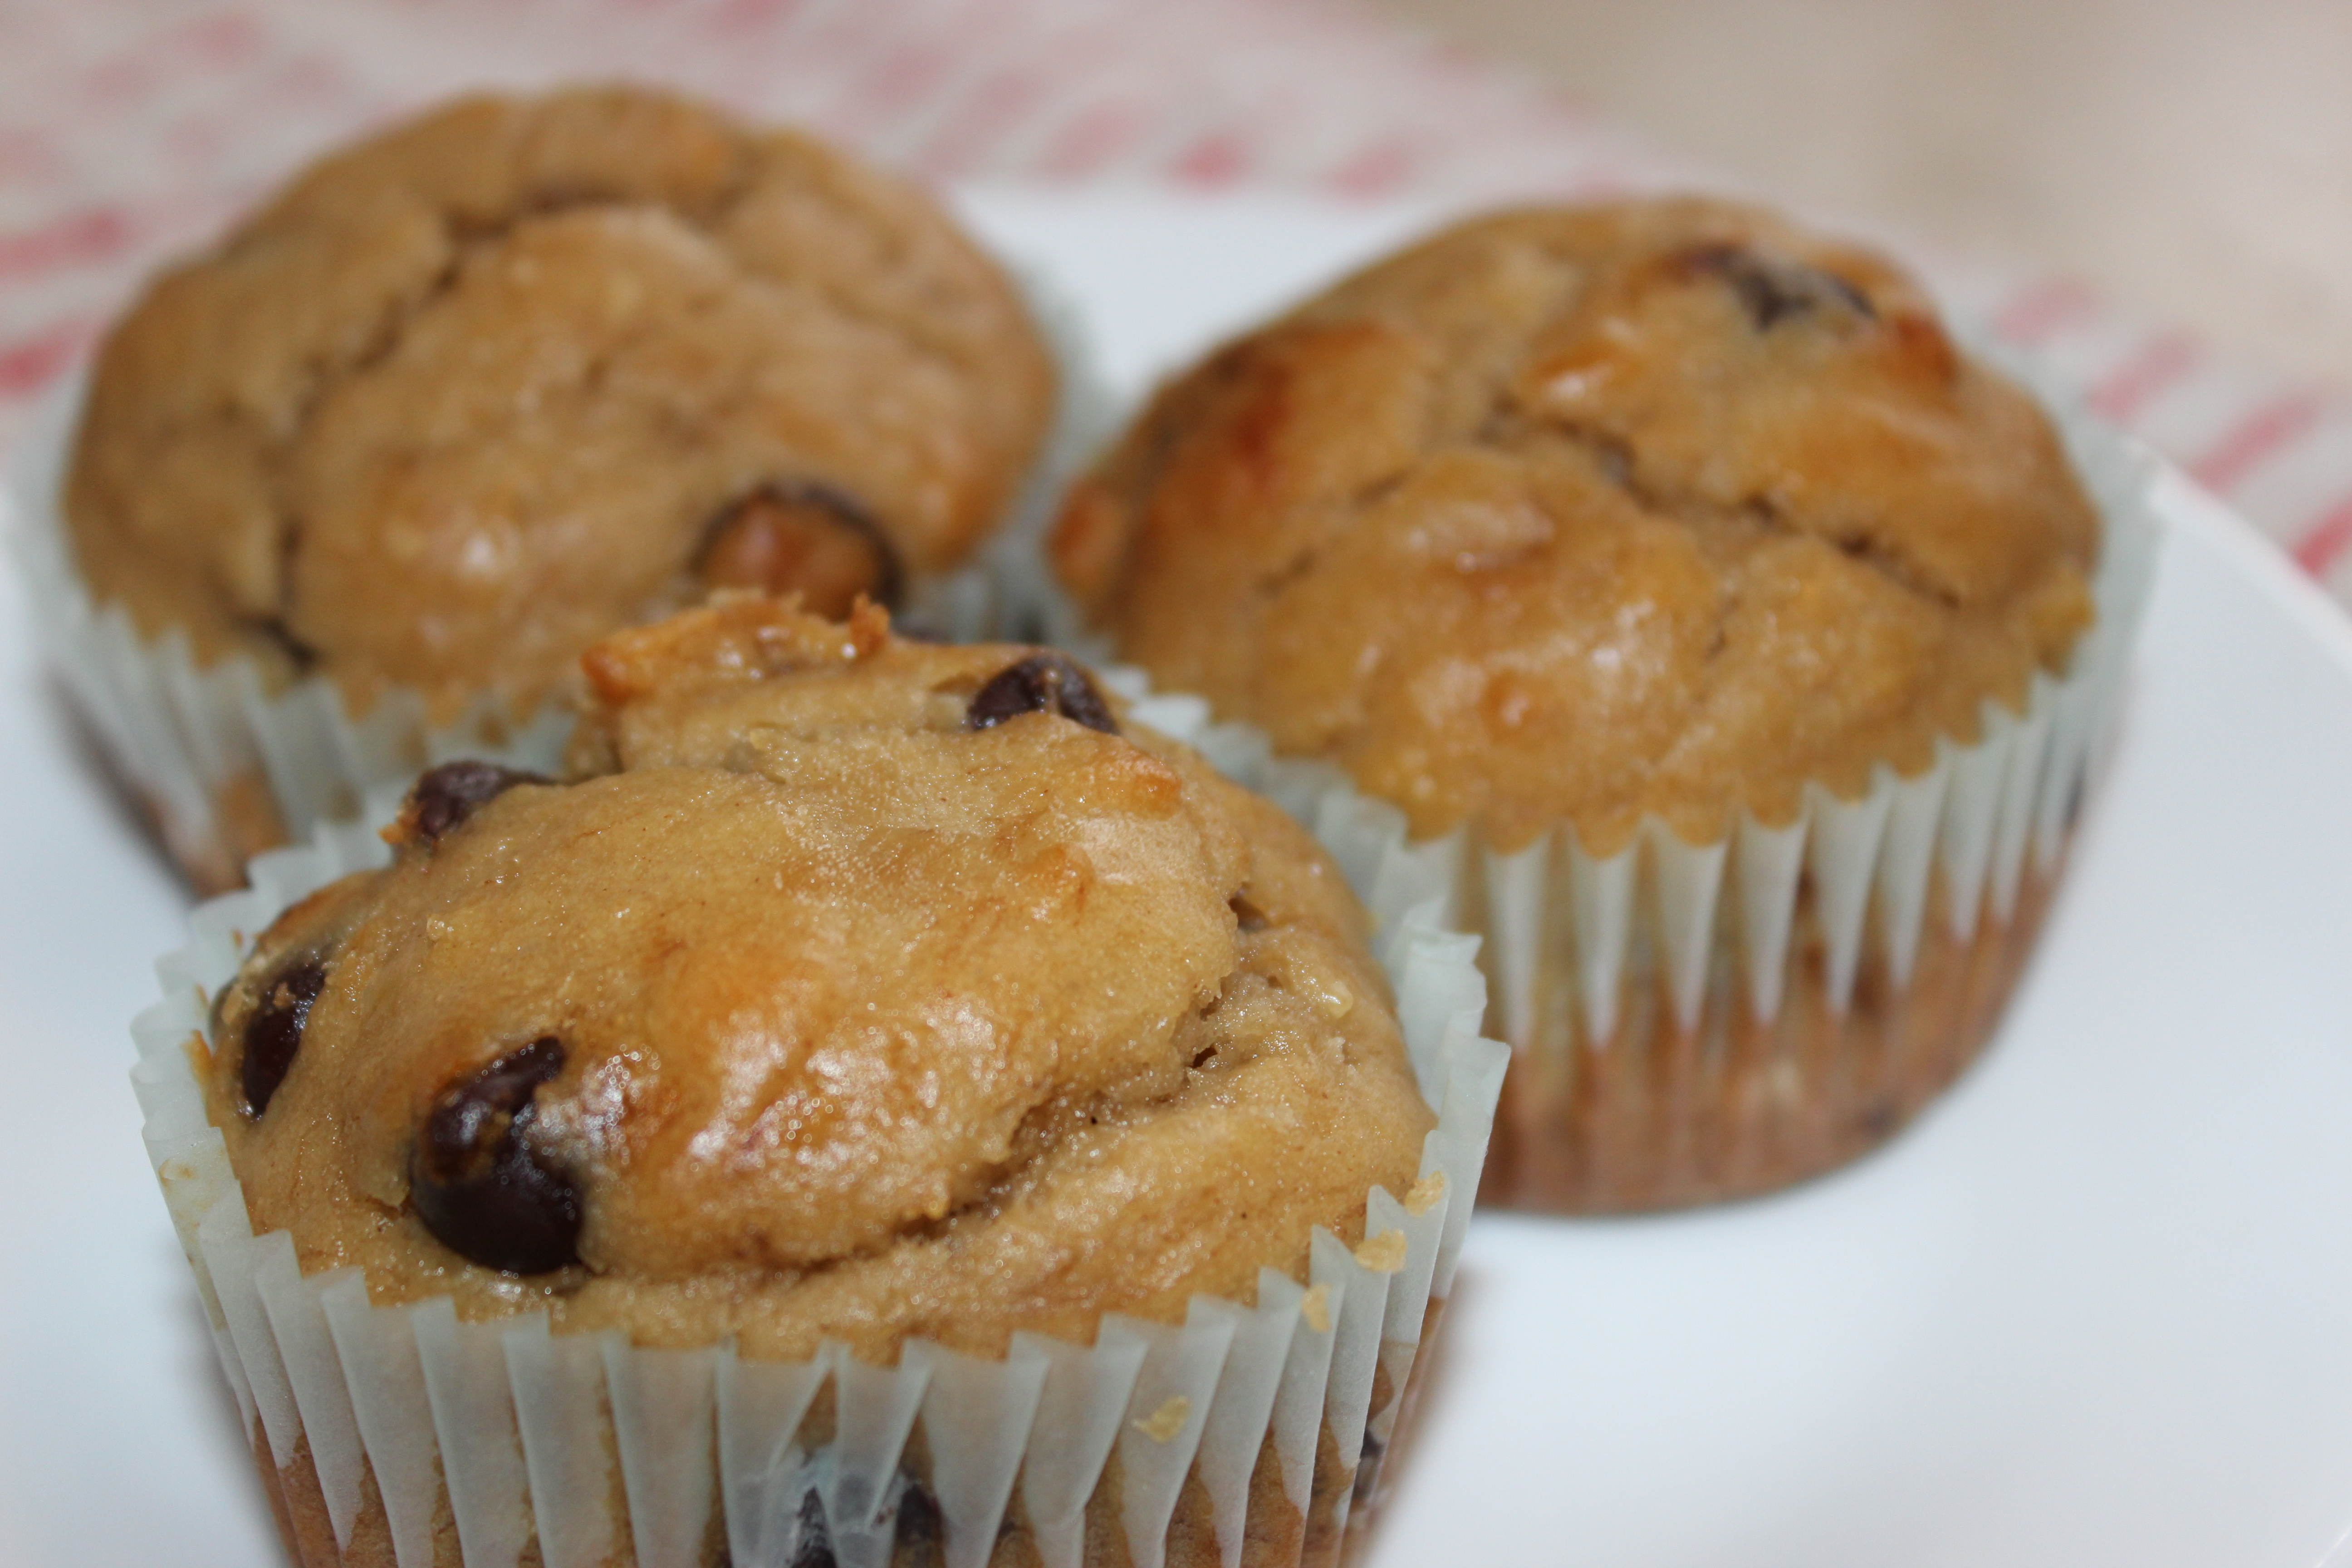 Cooking in College - Peanut Butter Chocolate Chips Banana Muffins